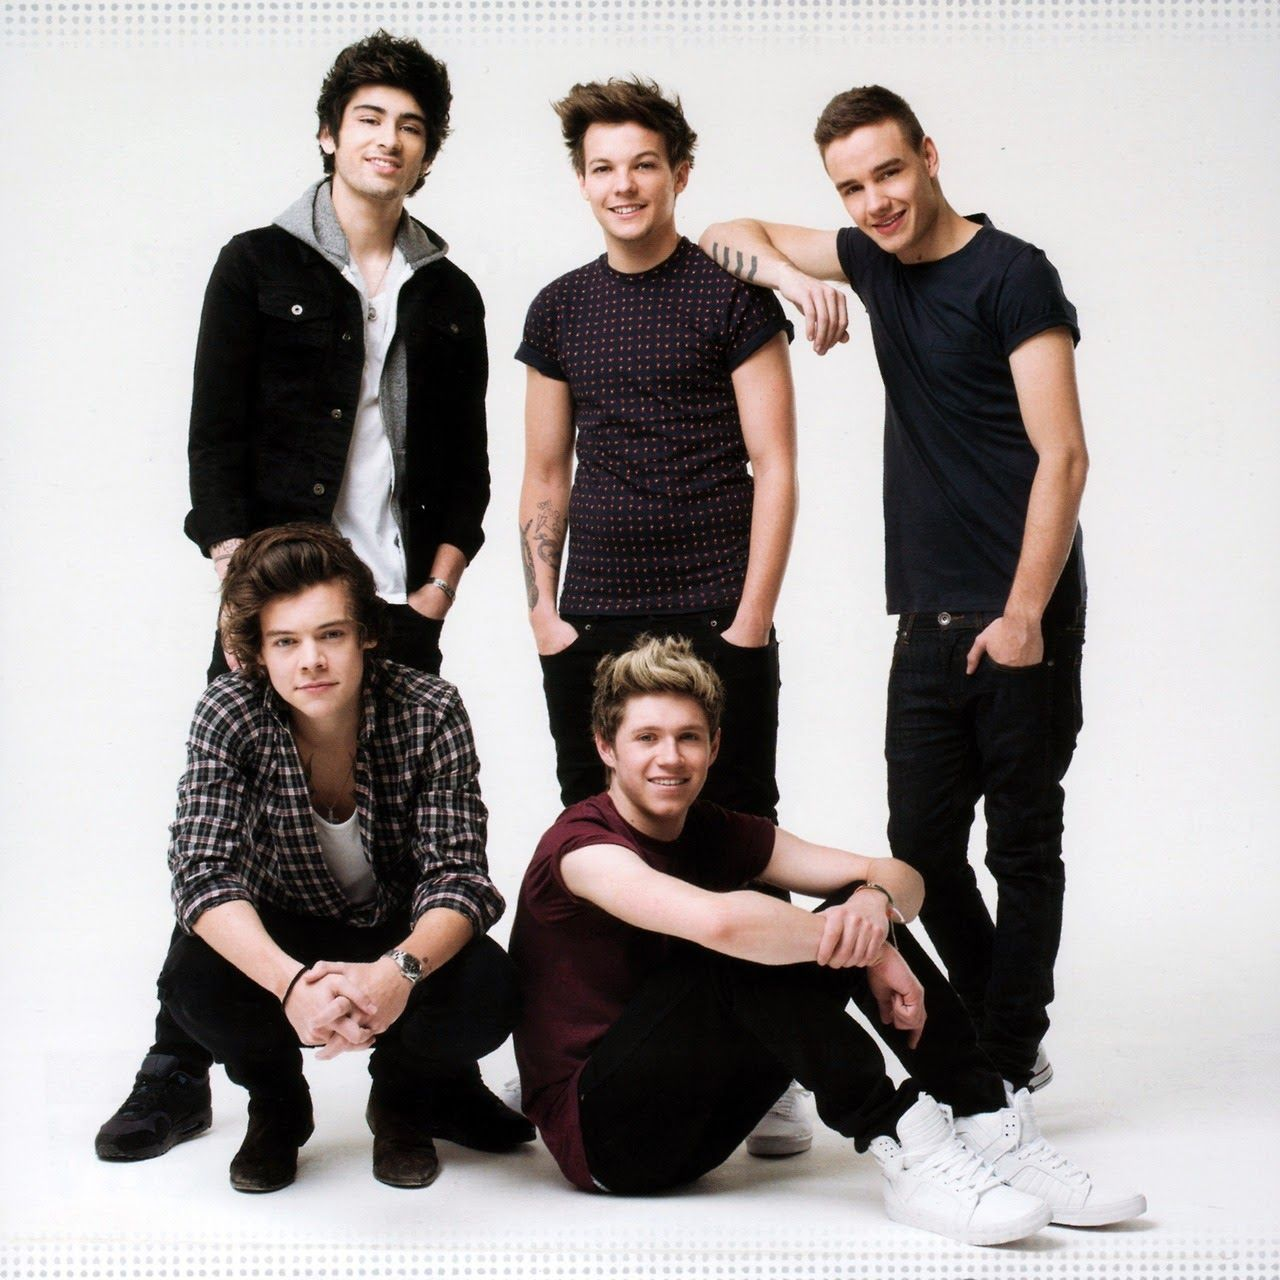 1280x1280 Free download one direction wallpaper for phone All sizes ...